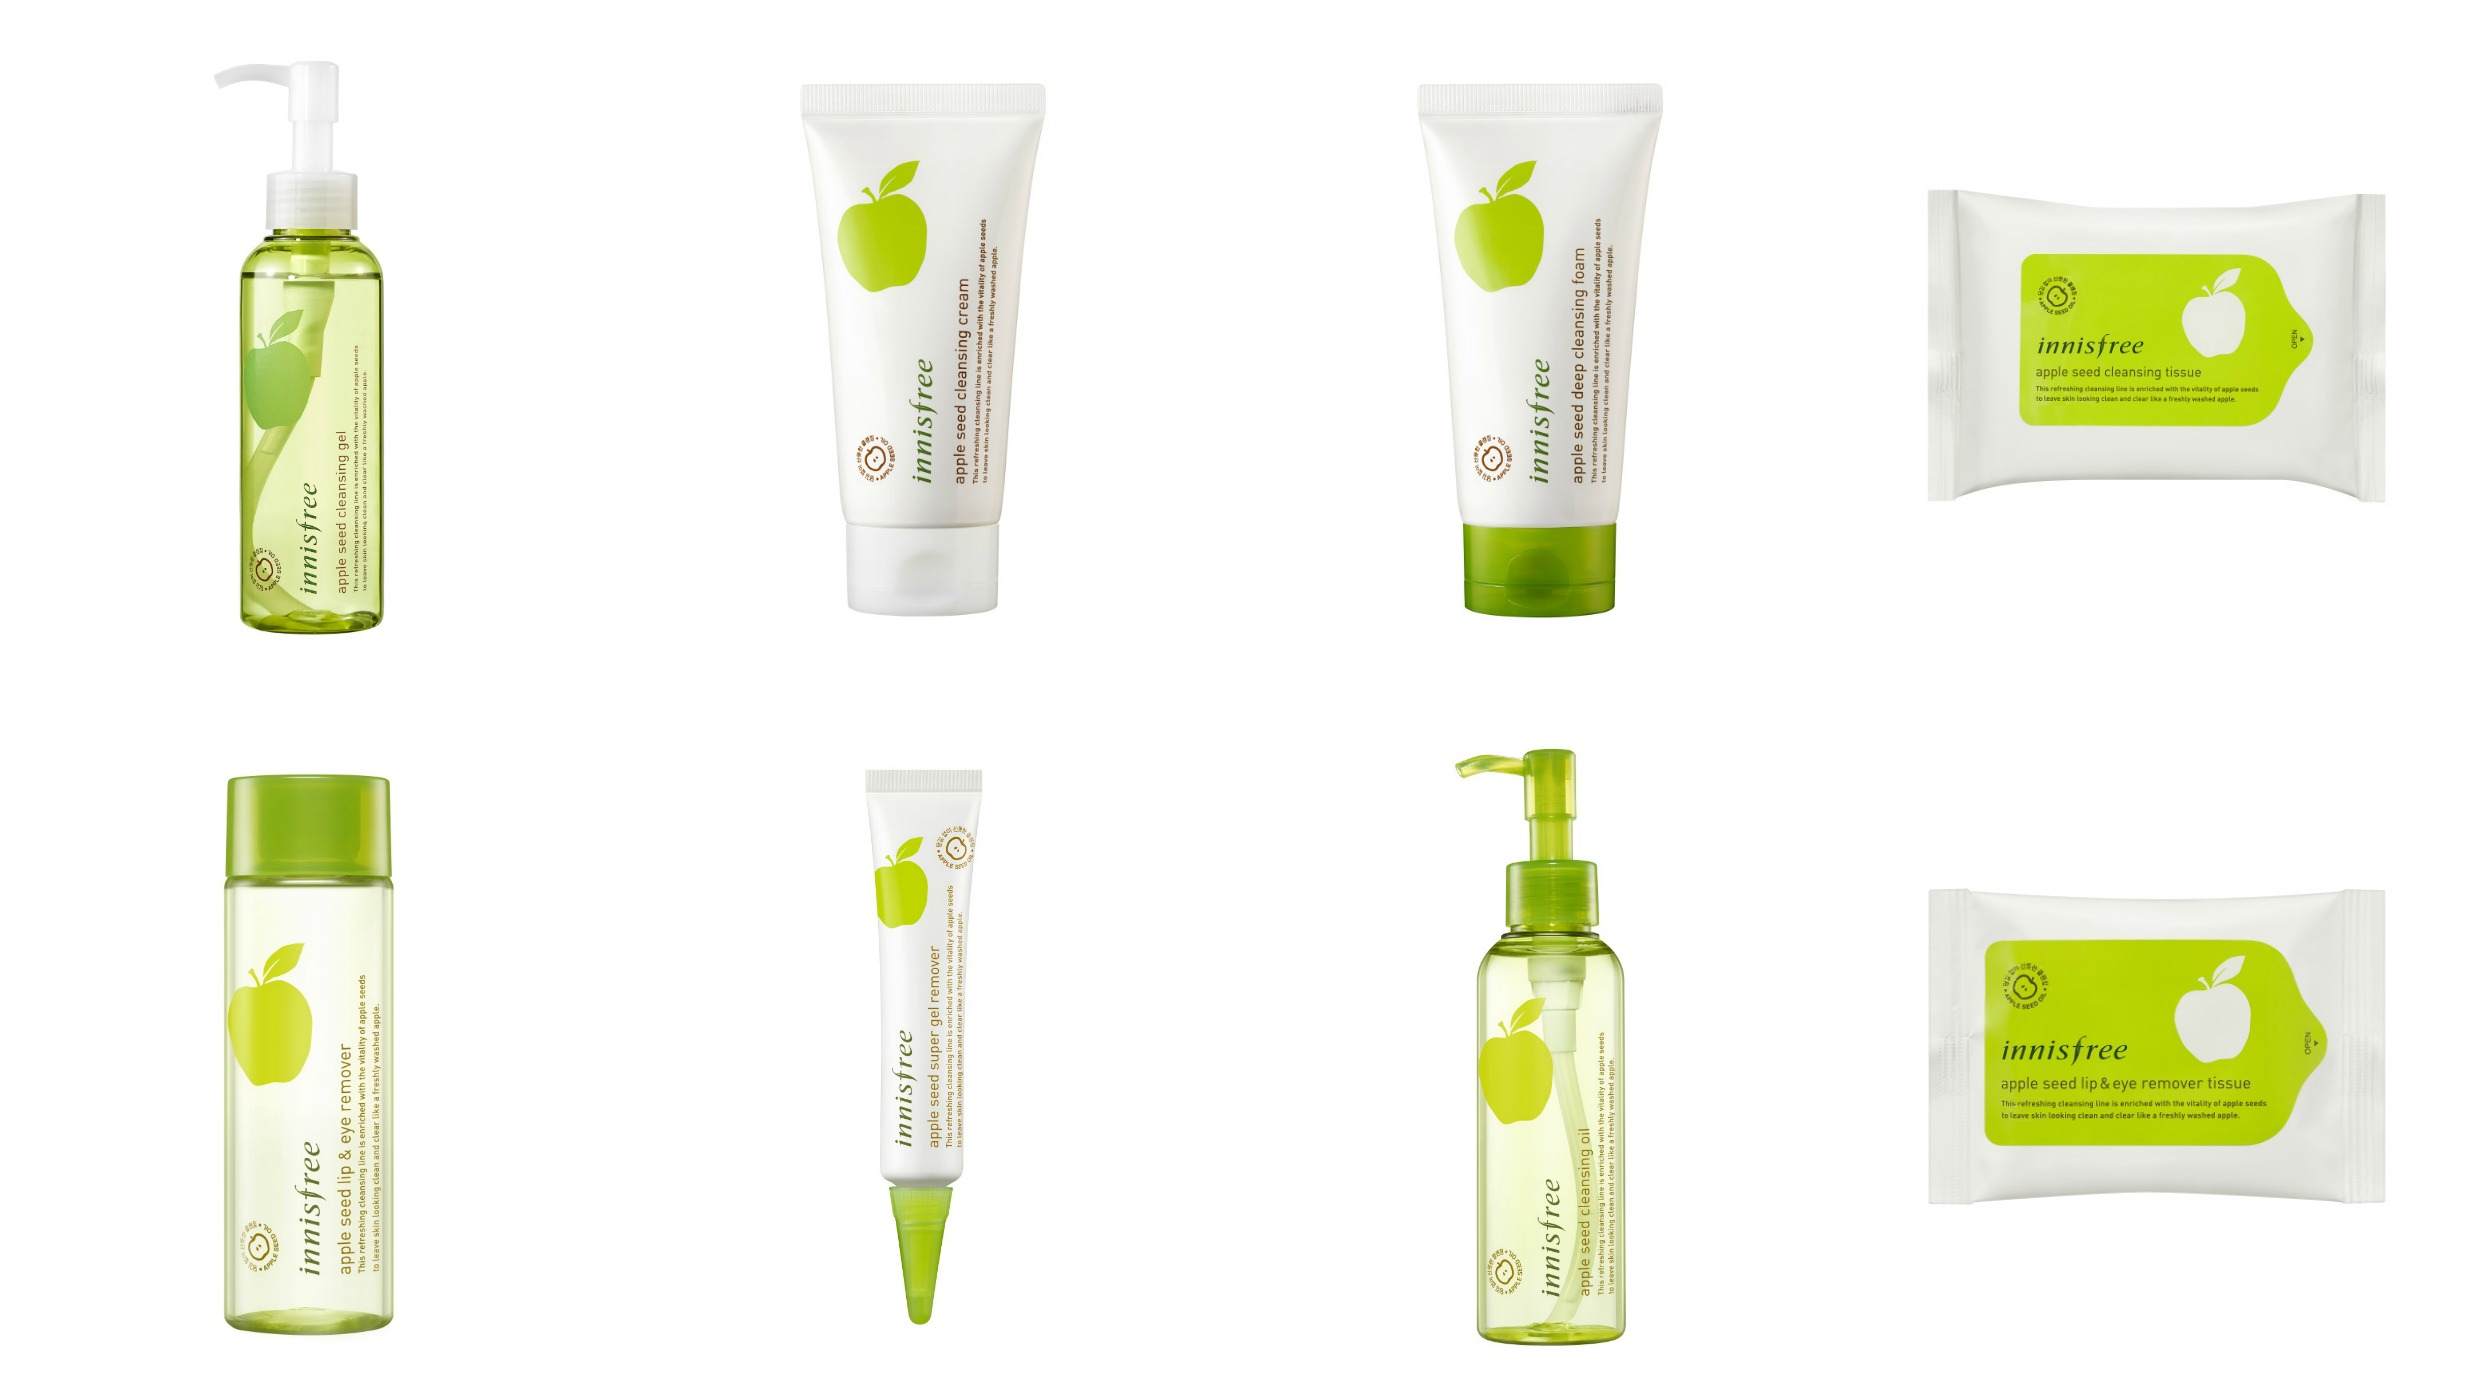 innisfree Apple Seed Cleansing Line Is Here To Make Makeup Removal A Breeze